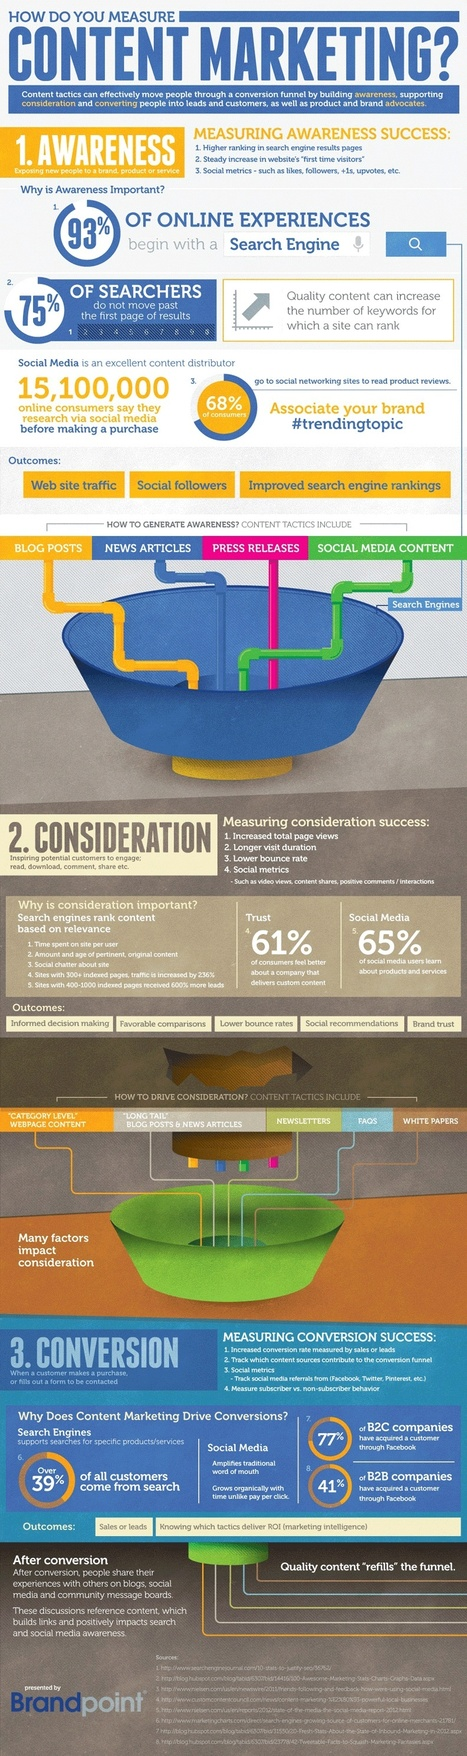 Measuring Your Content Marketing Success [INFOGRAPHIC]   Interesting   Scoop.it